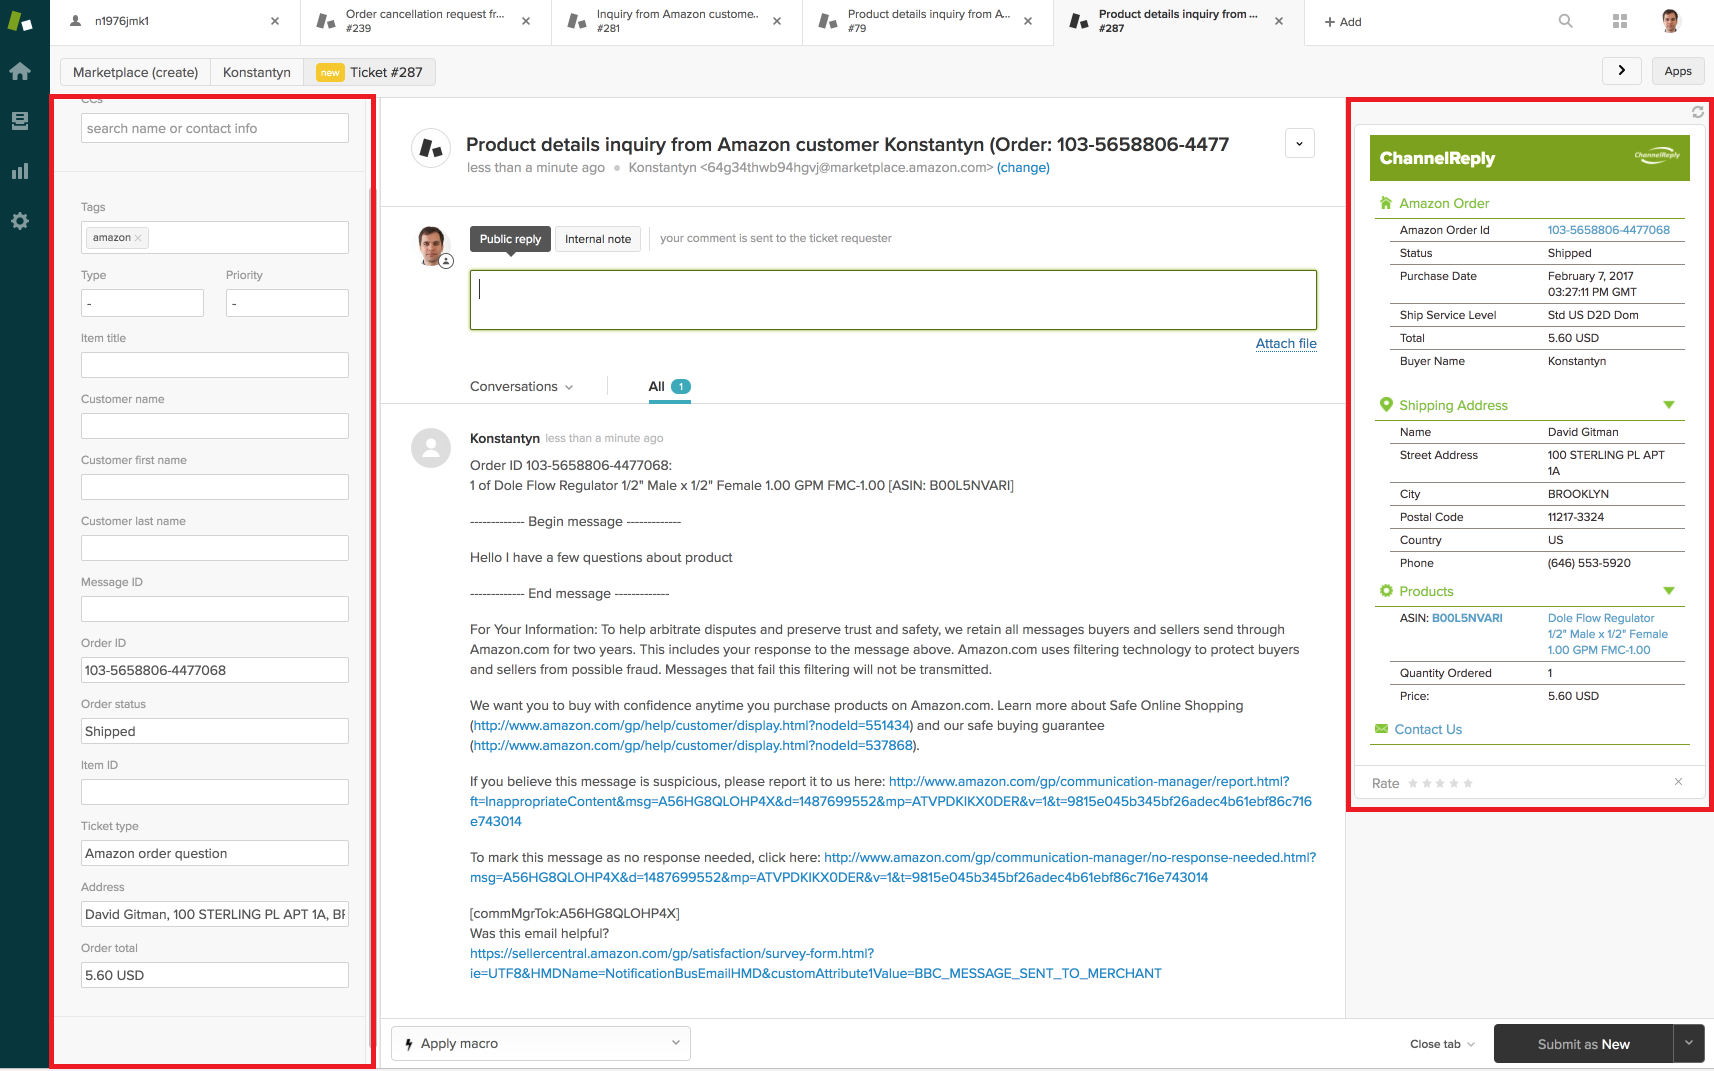 Amazon Message in Zendesk with ChannelReply